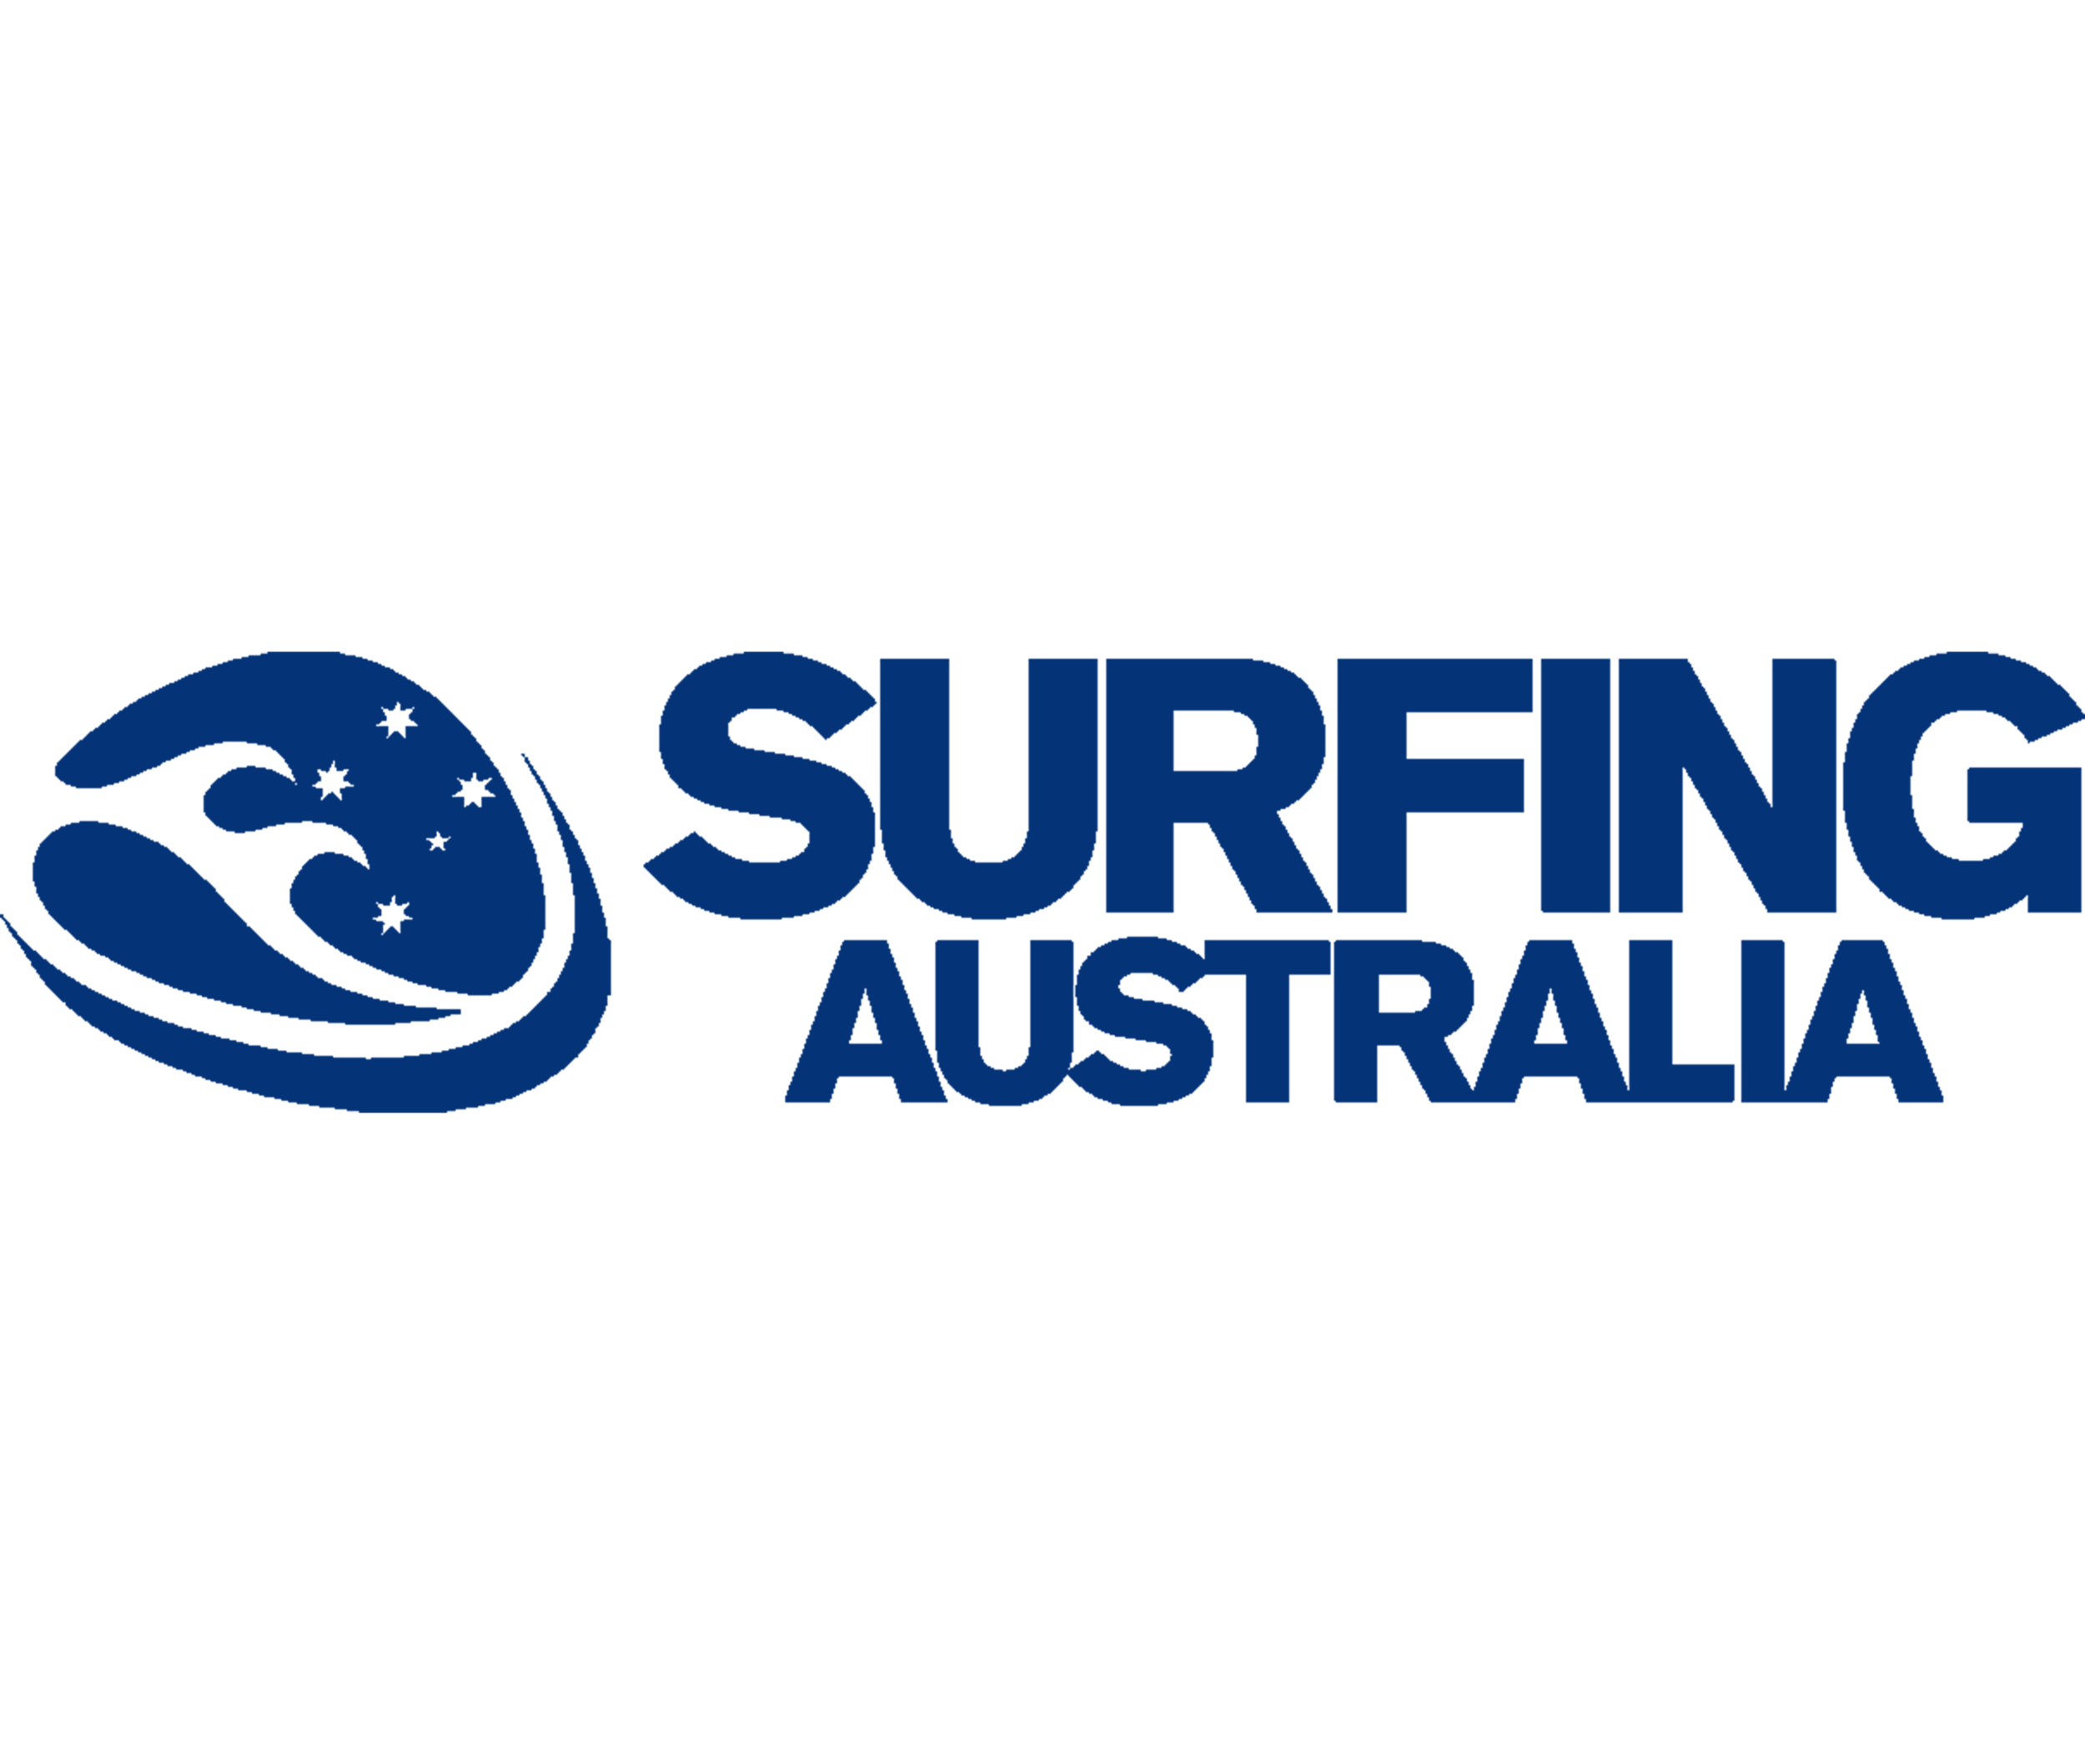 SURFING_AUSTRALIA.png